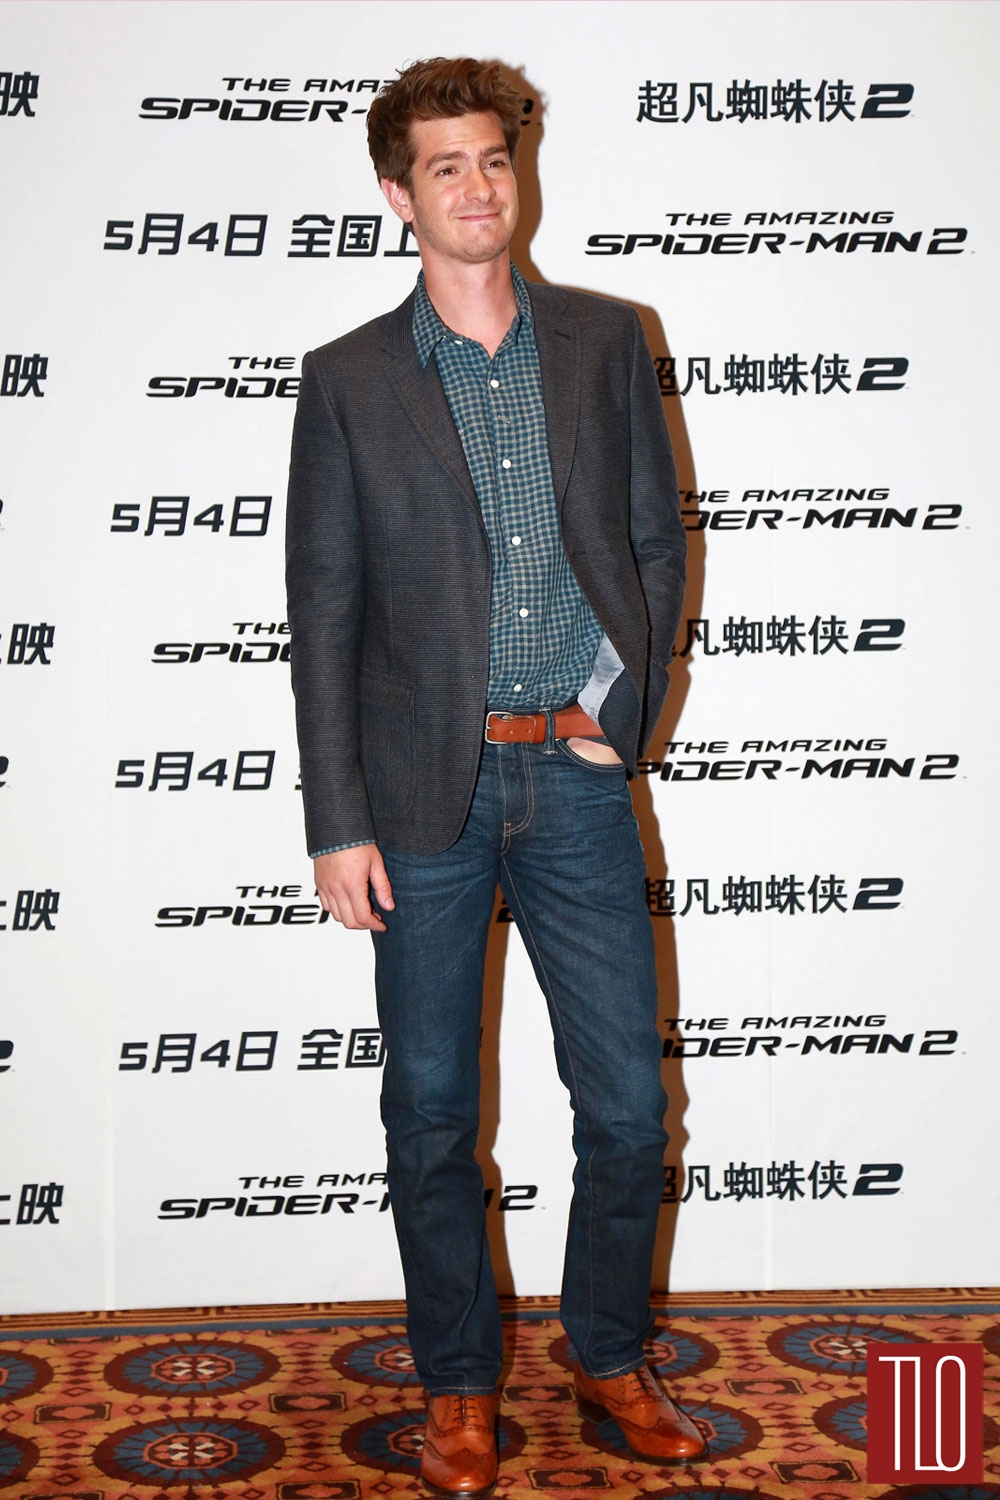 Andrew-Garfield-Amazing-Spider-Man-Press-Conference-Beinjing-Tom-Lorenzo-Site-TLO (1)